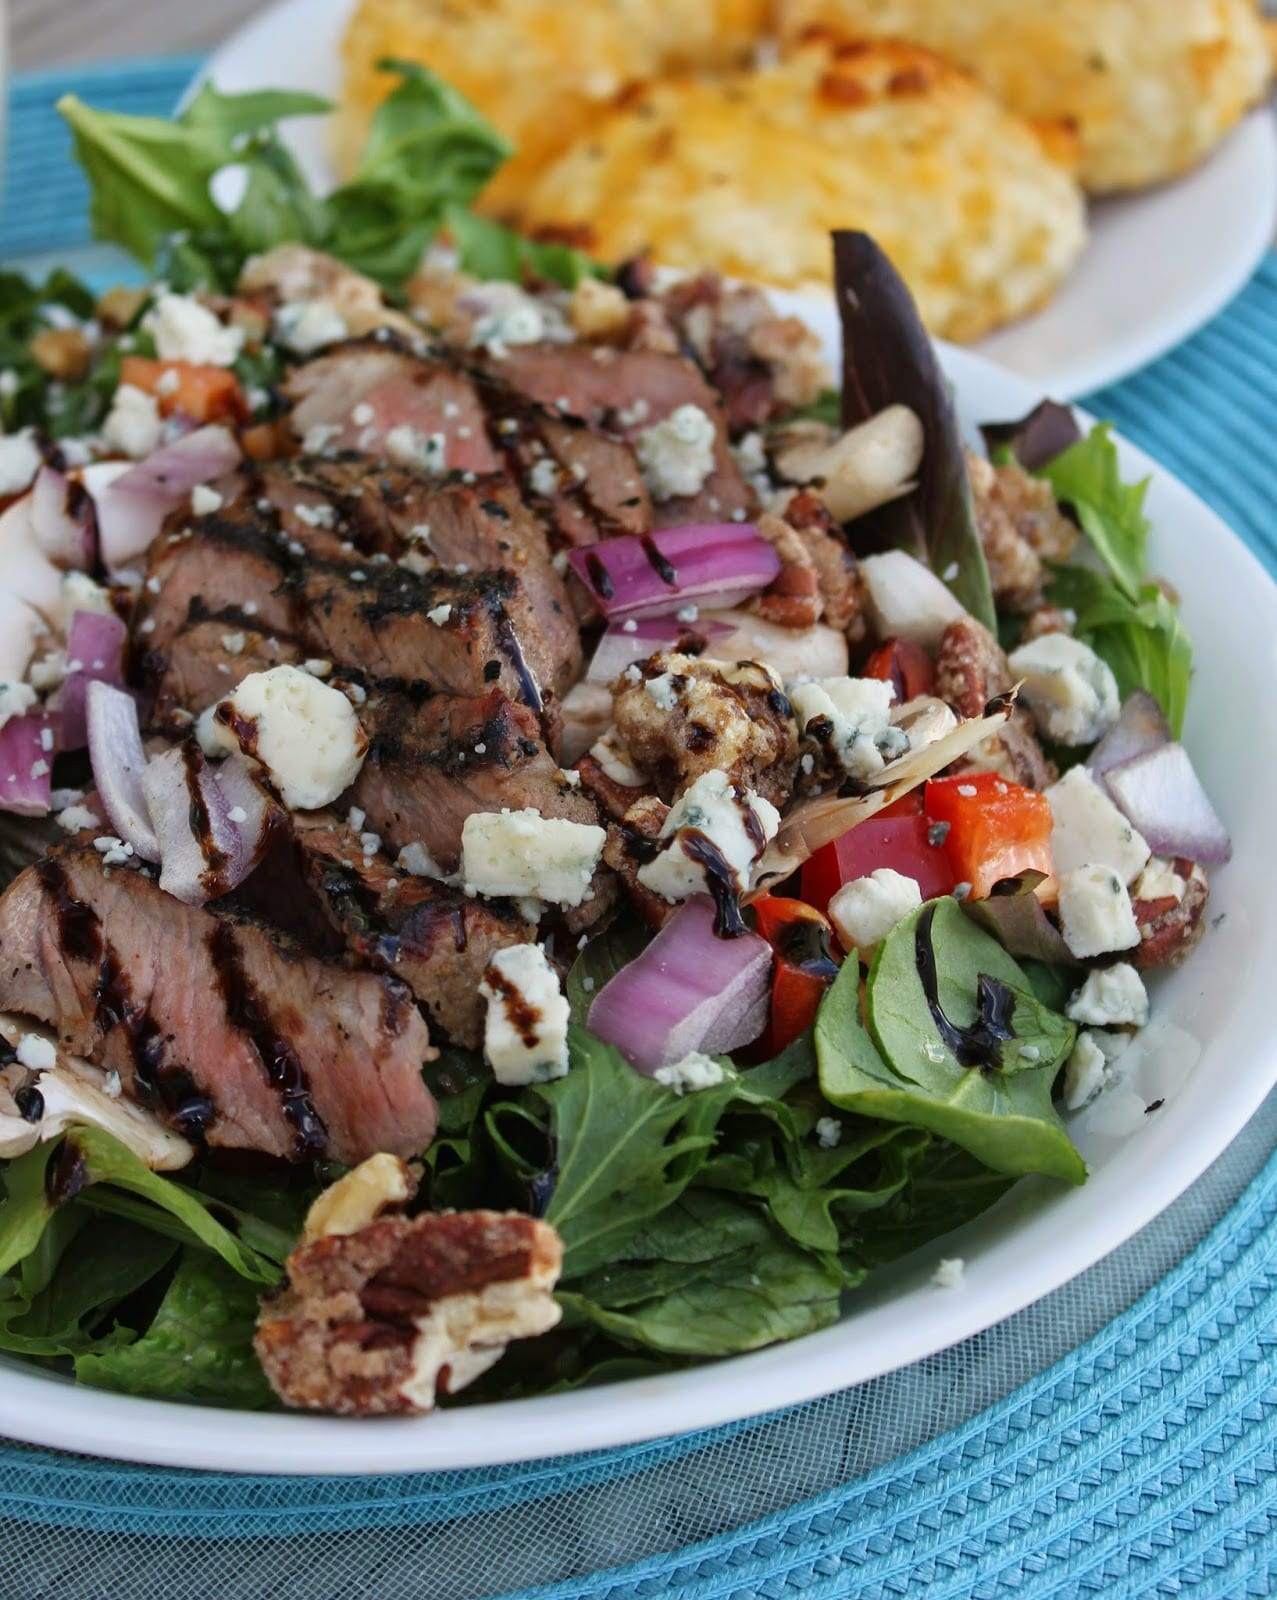 Sliced Steak Salad with Creamy Horseradish Dressing (Restaurant copy-cat)